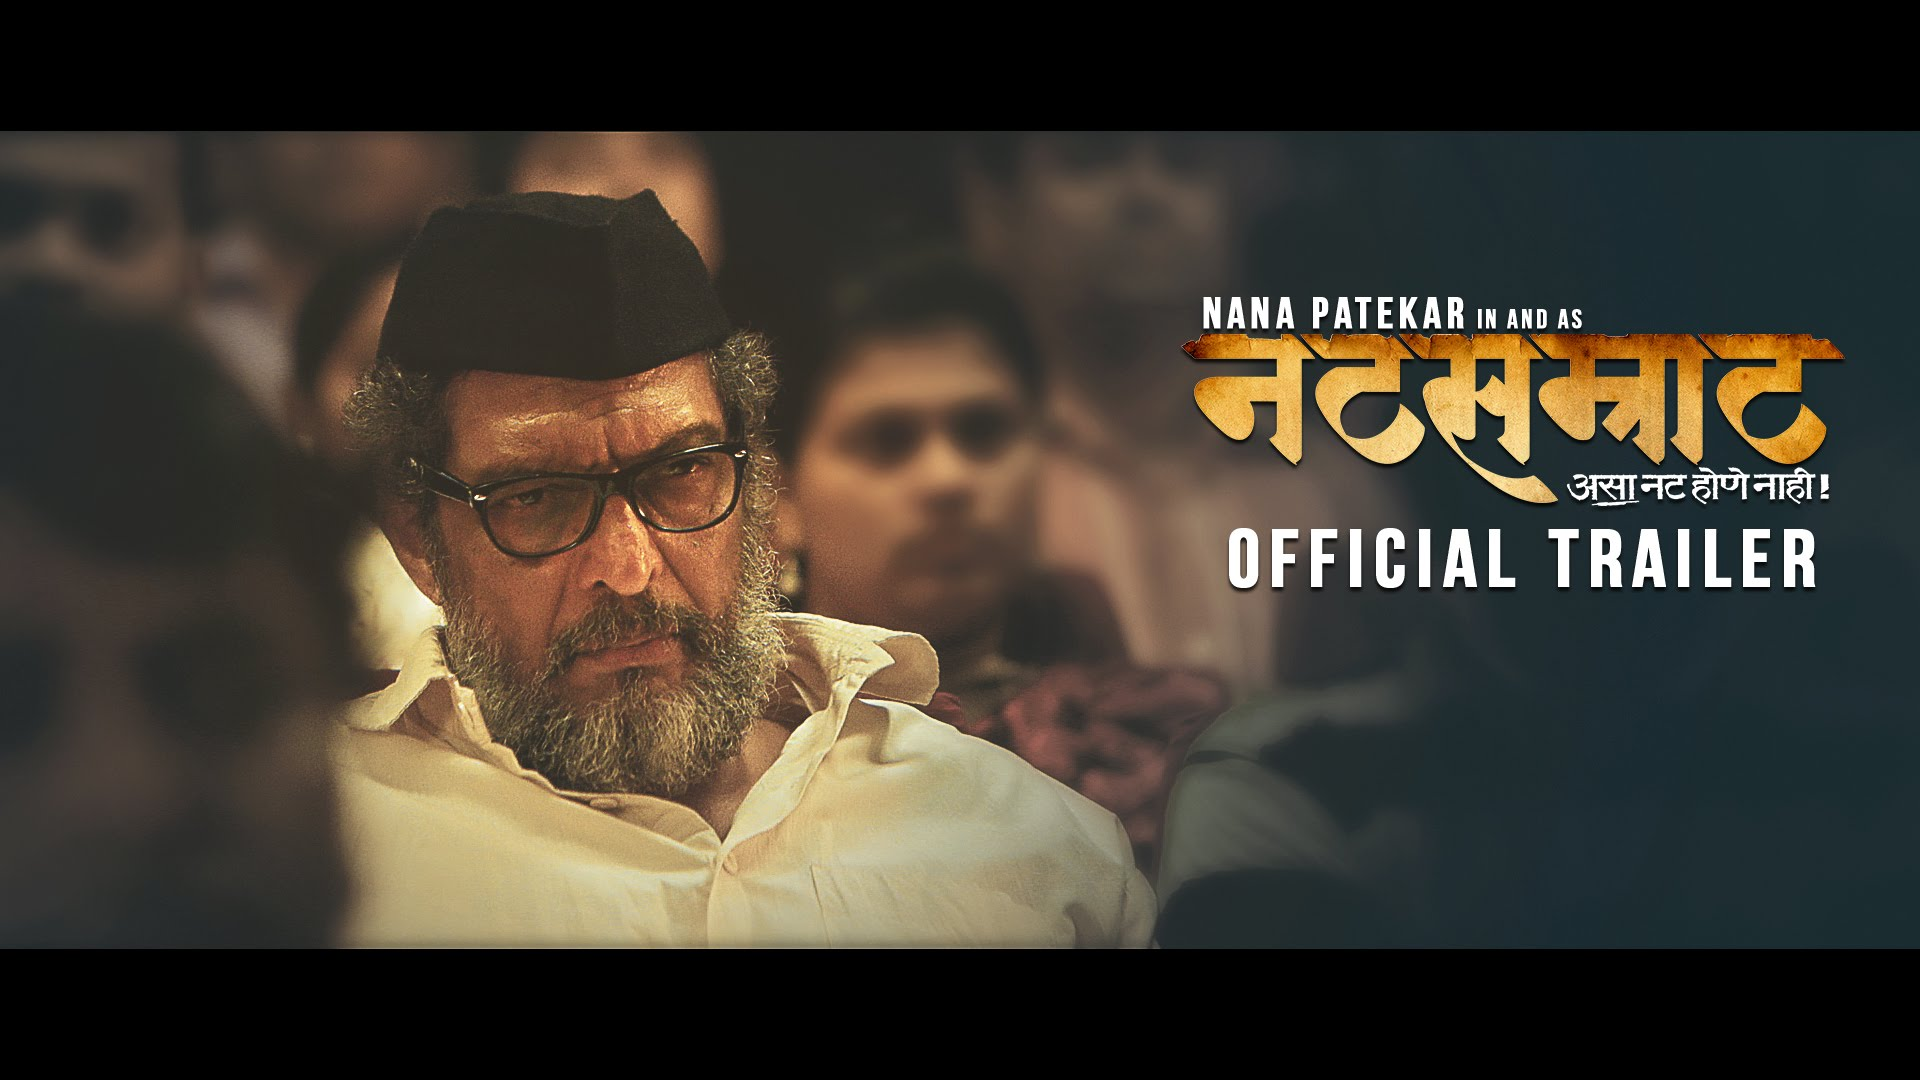 Watch: 'Natsamrat' Marathi Movie Trailer Starring Nana Patekar